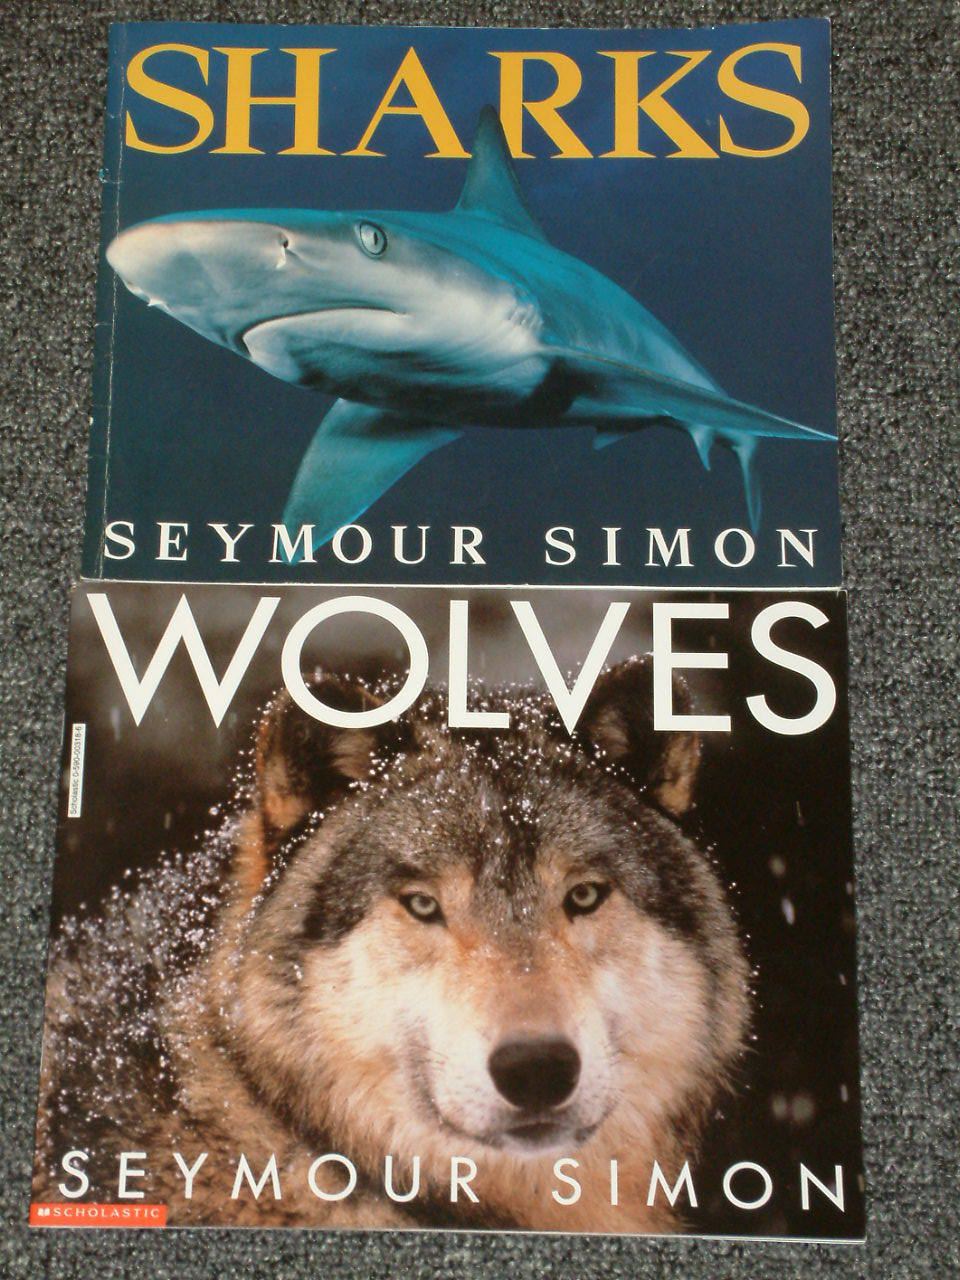 6 by Seymour Simon, Oceans signed by the author, Volcanoes